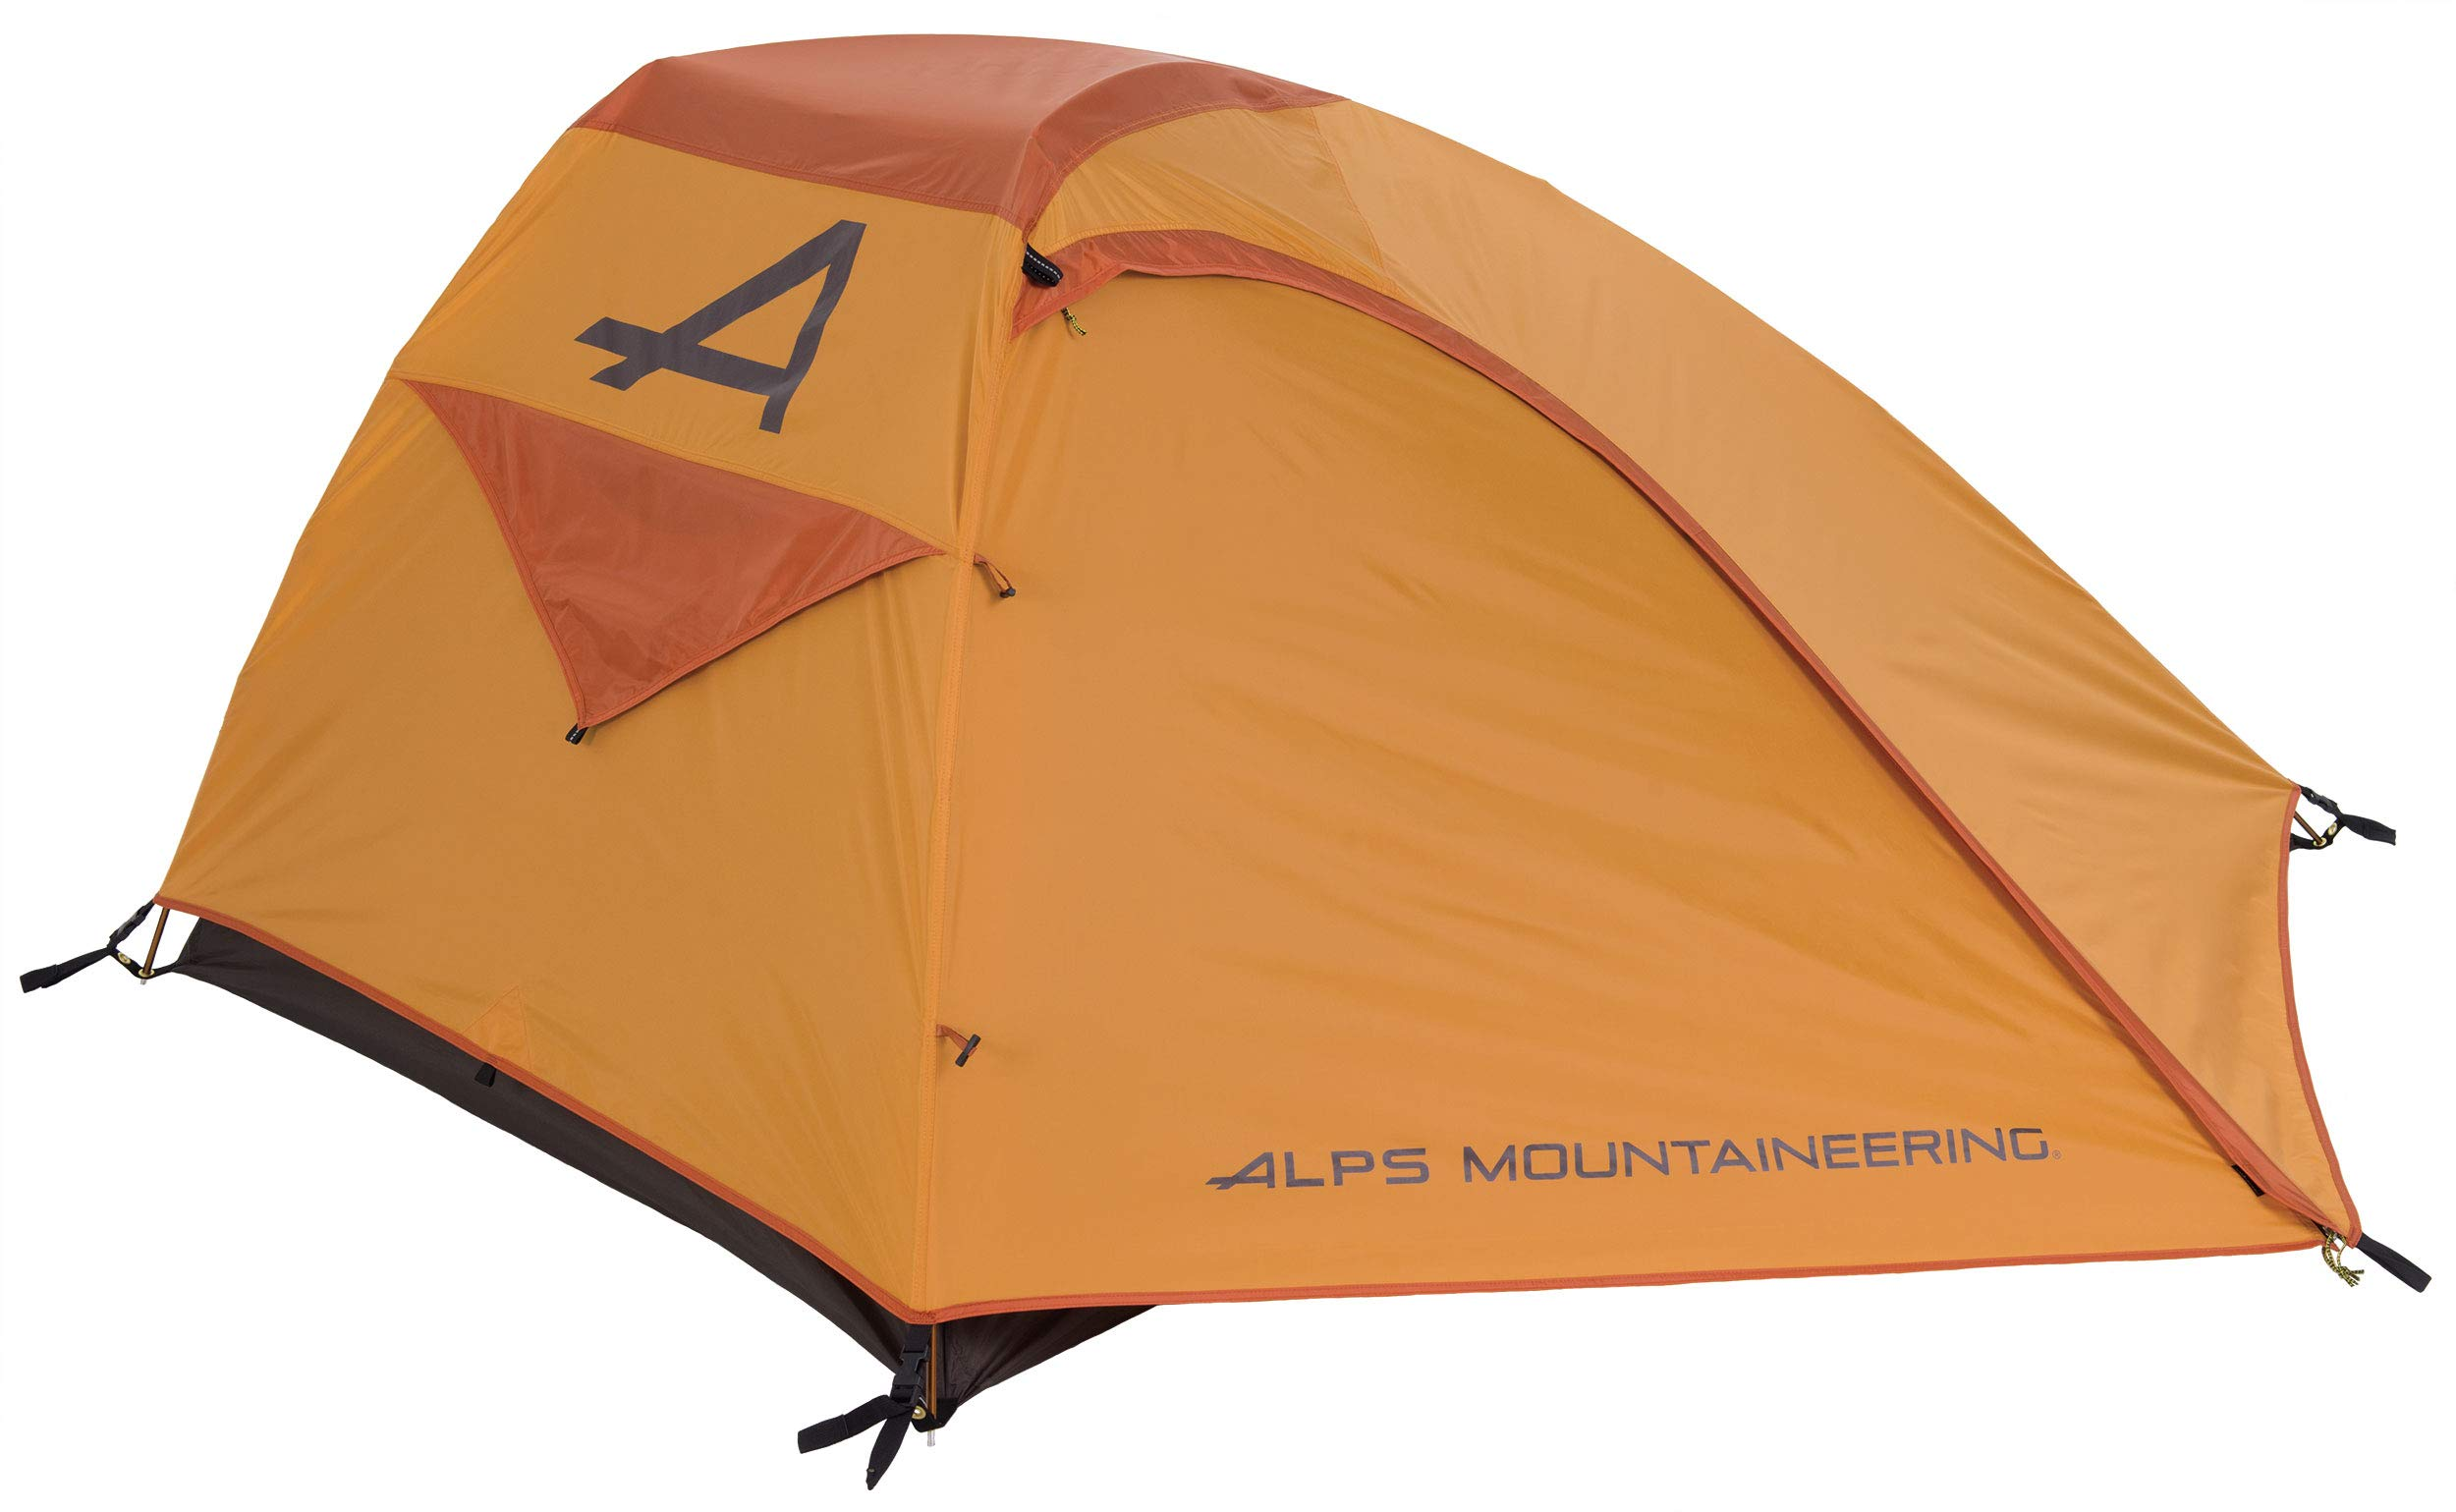 ALPS Mountaineering Zephyr 2-Person Tent, Copper/Rust by ALPS Mountaineering